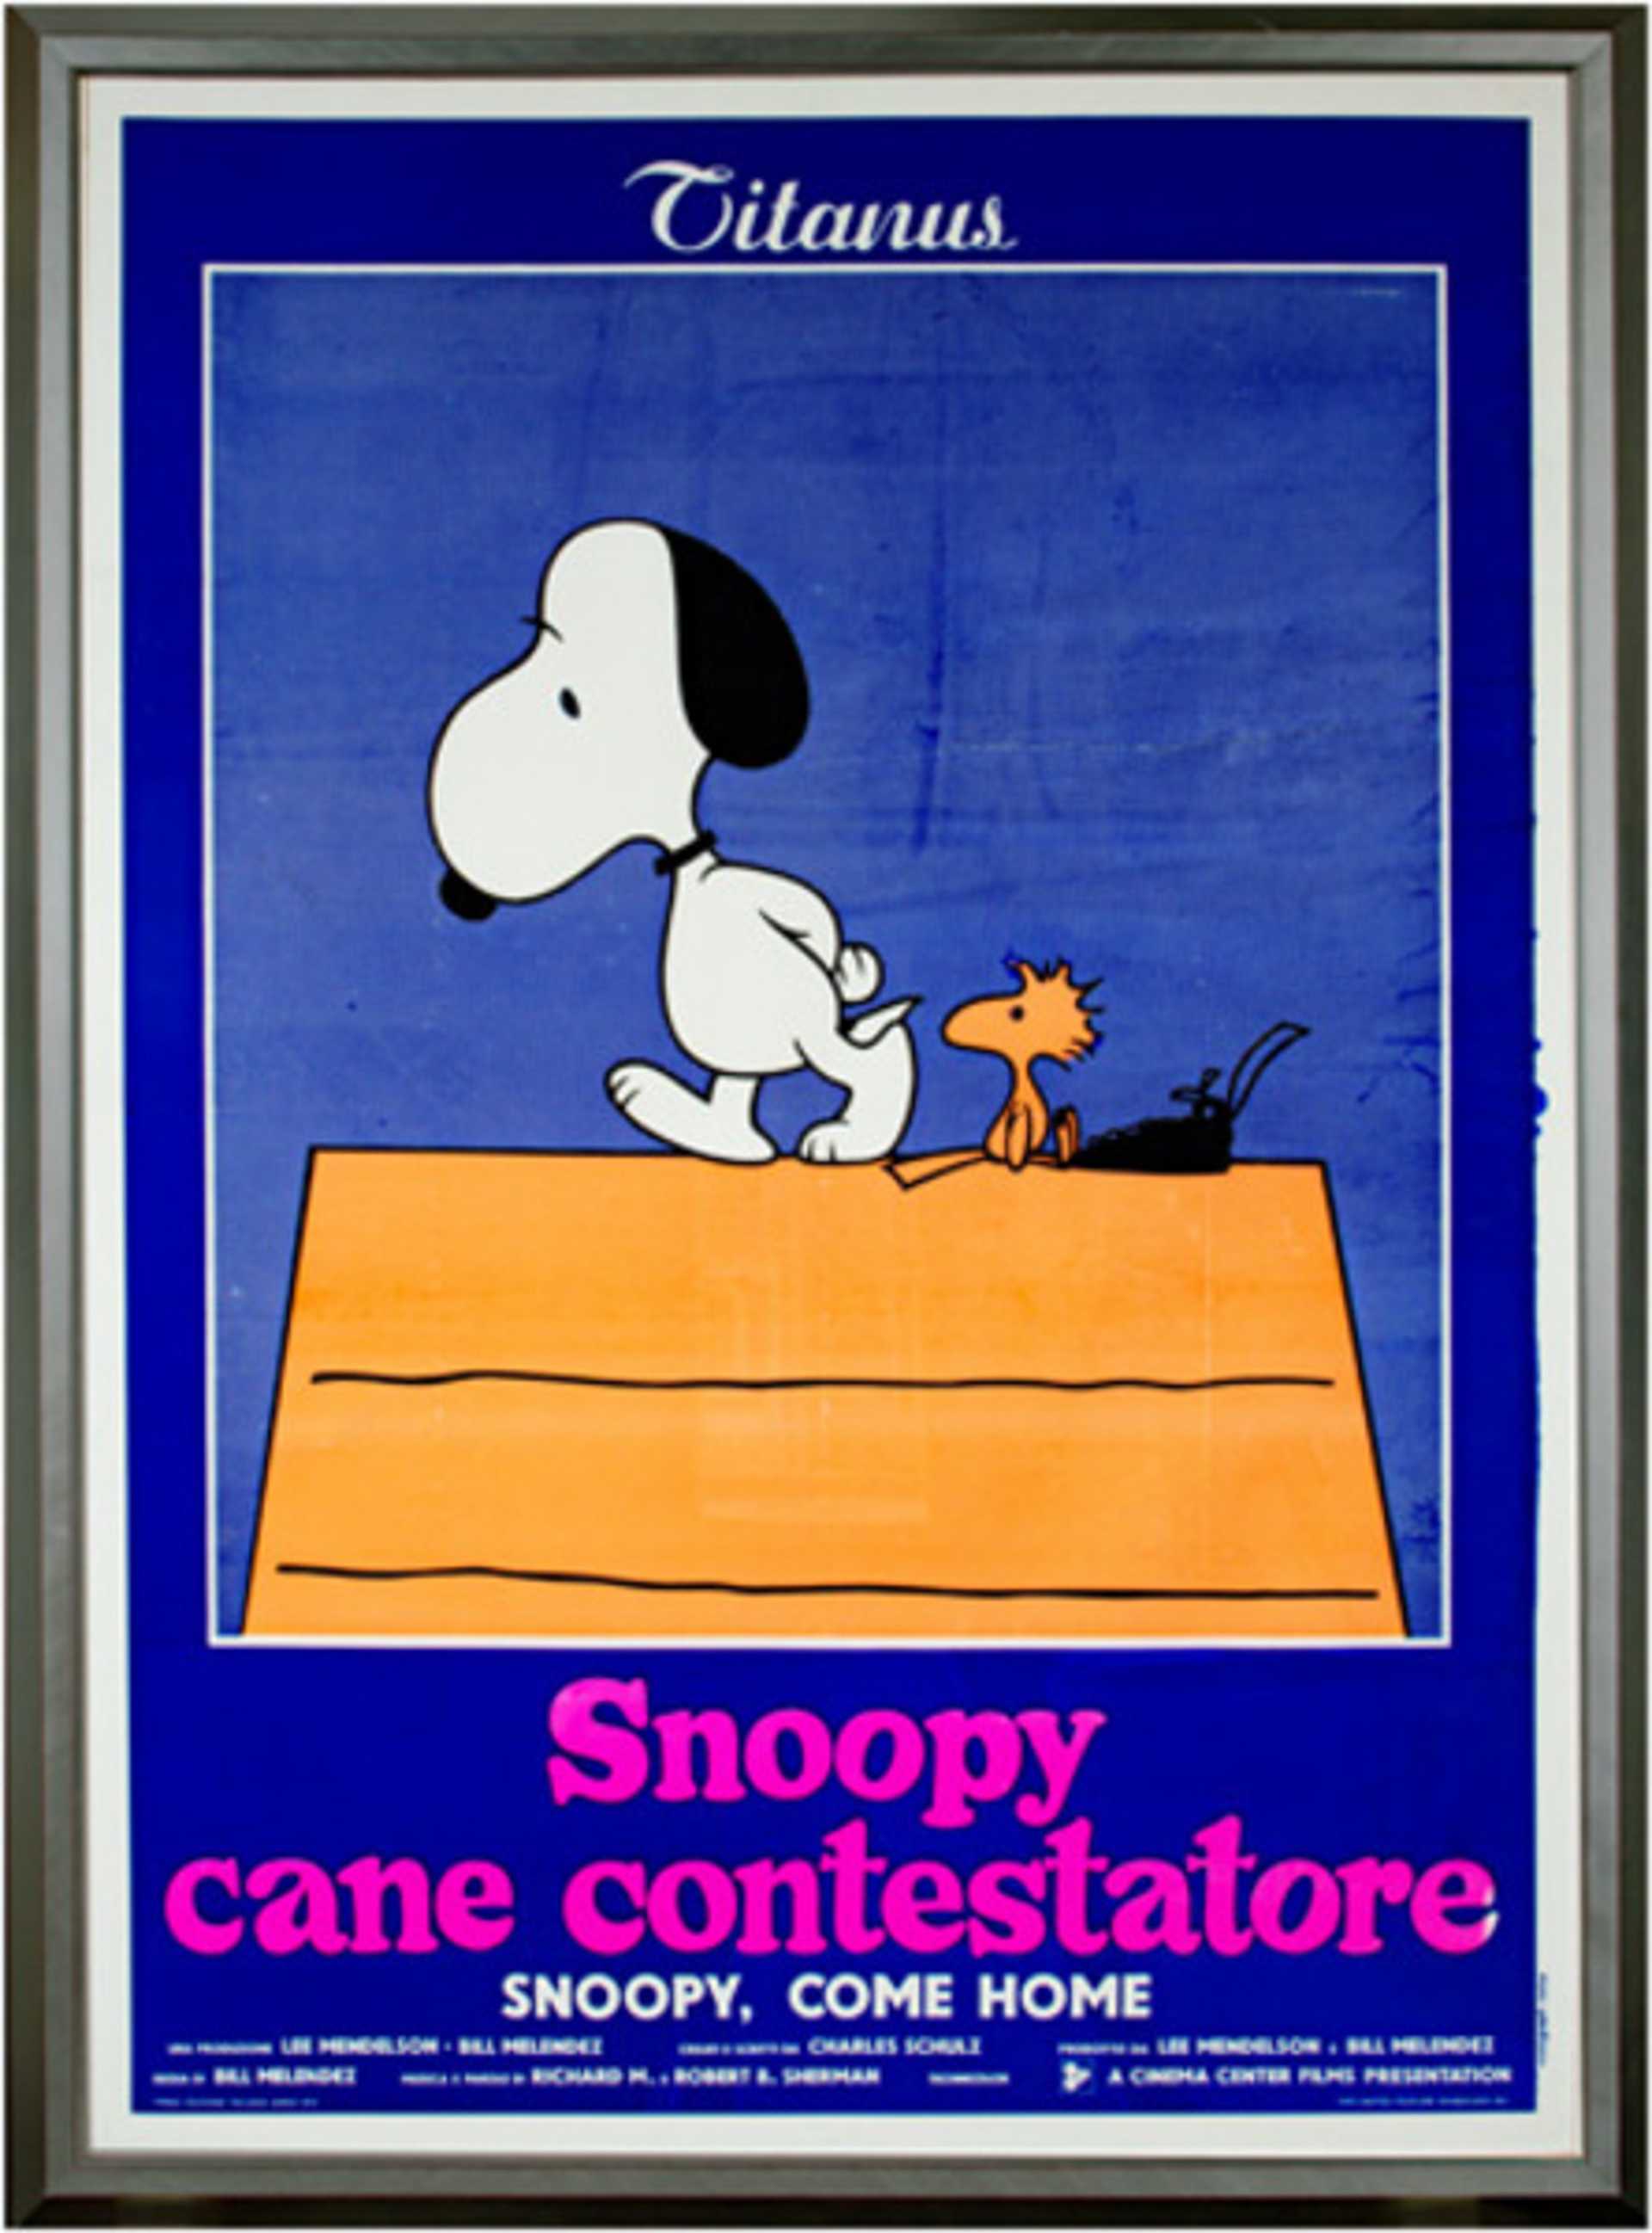 Snoopy Come Home by Charles Schulz